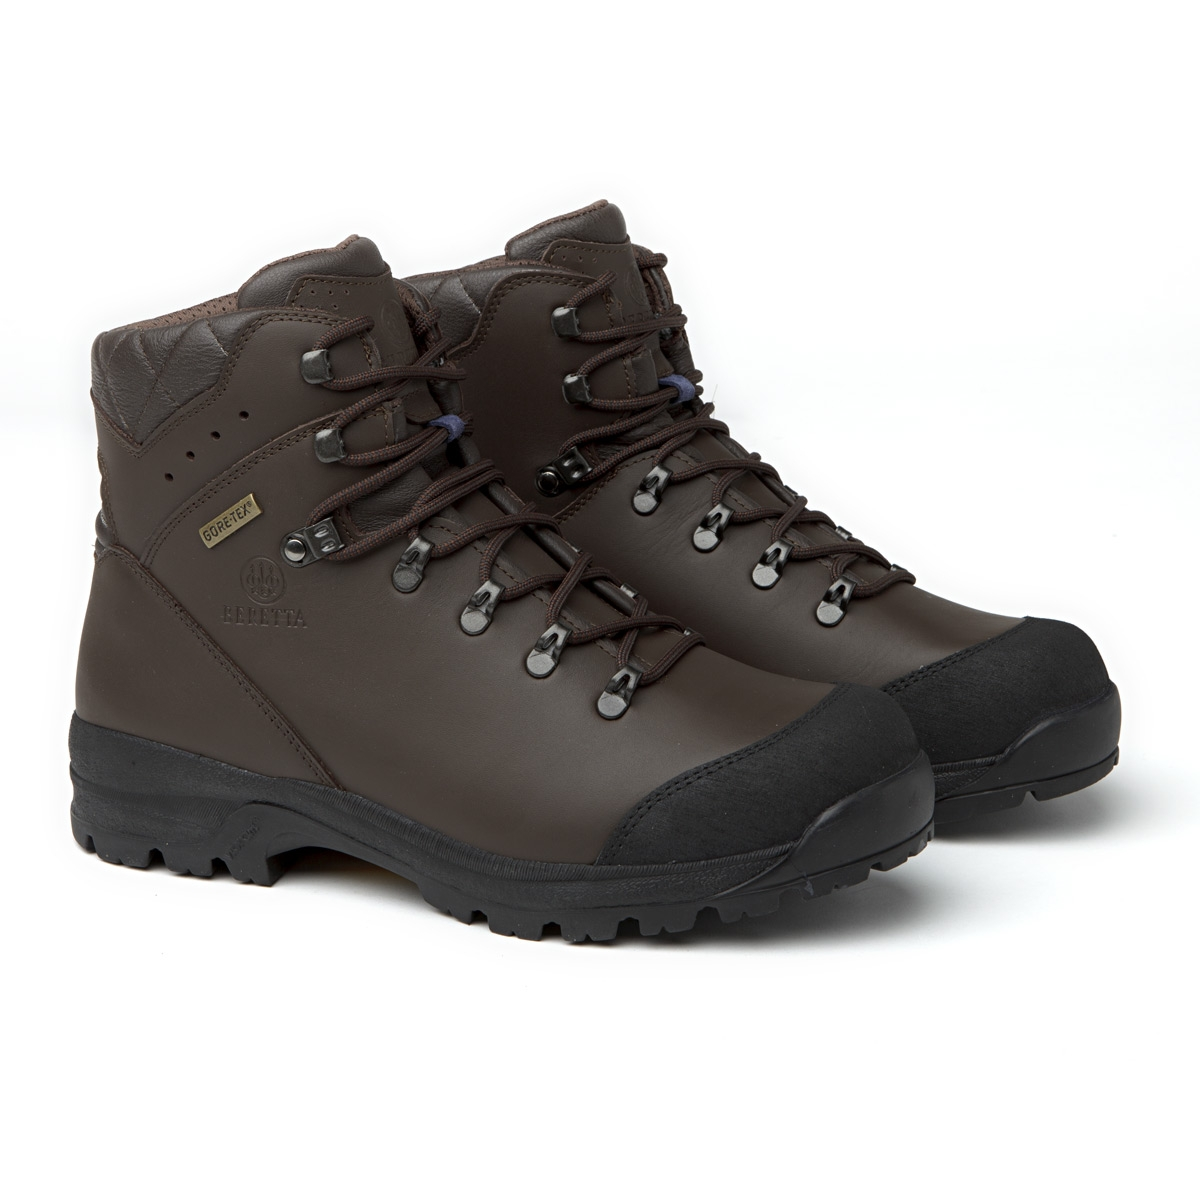 47d72960106852 Beretta Luserna Leather GTX 5.5 Inch Walking Boots - Brown | Uttings ...